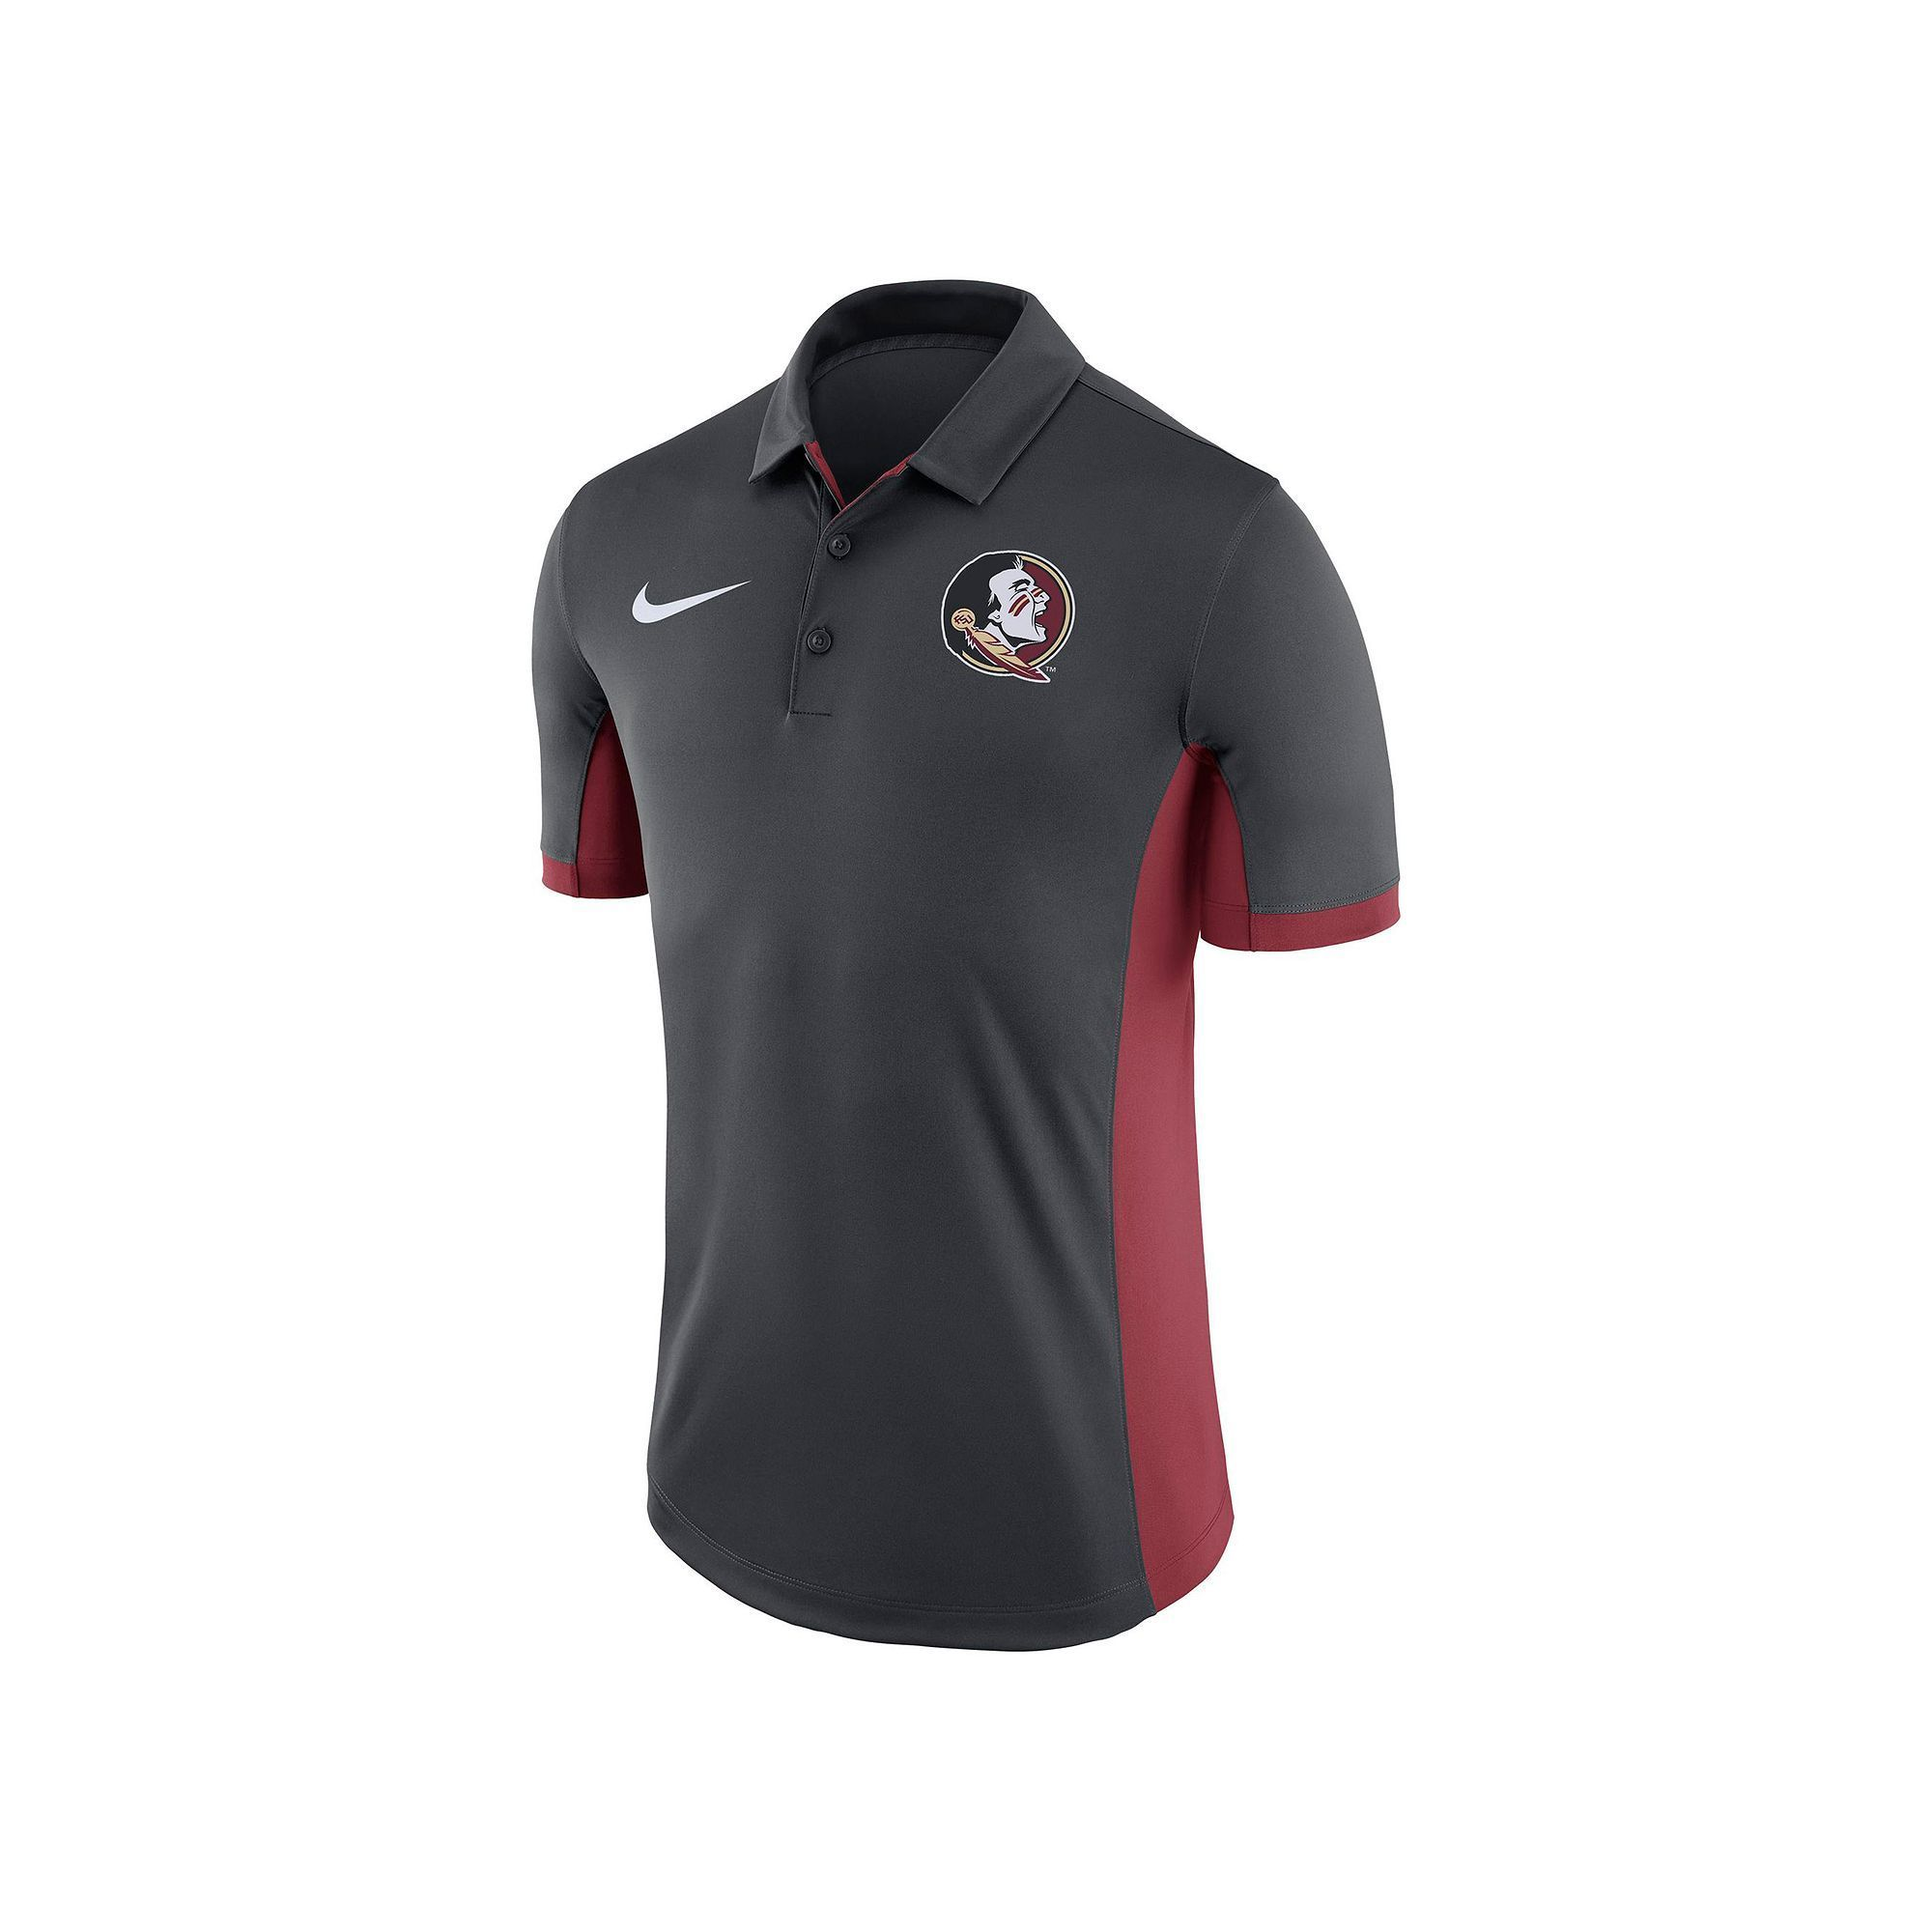 Men's Nike Florida State Seminoles Dri-FIT Polo, Size: Medium, Black